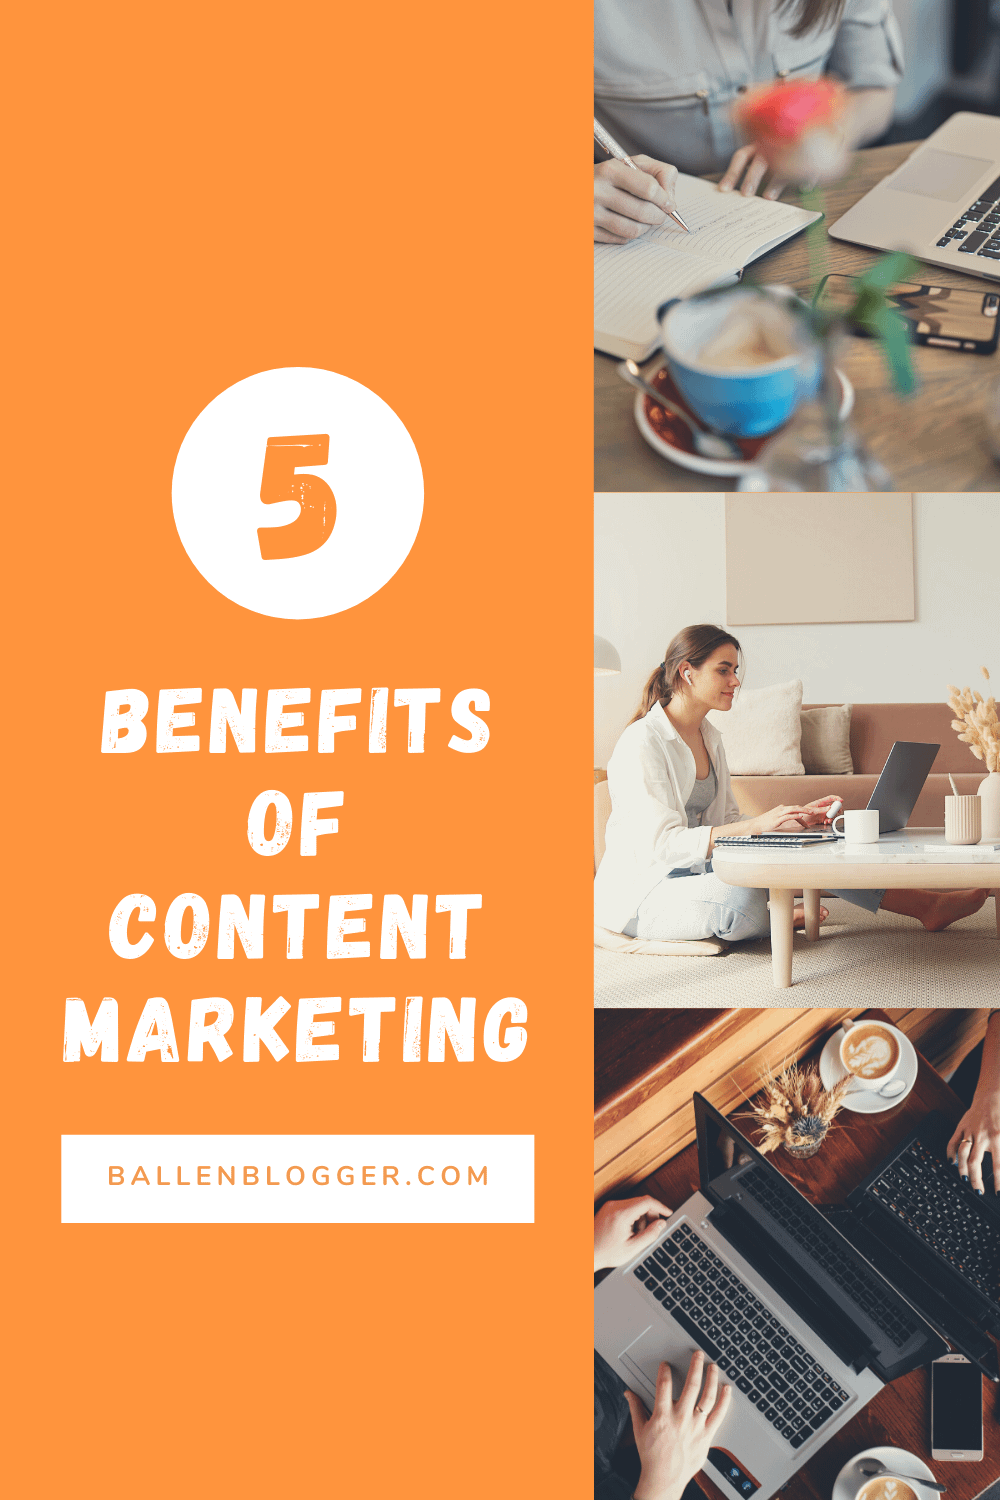 Content marketing is a long-term strategy that takes time to see results. But these benefits are worth it because they make your brand stronger and more attractive to customers.